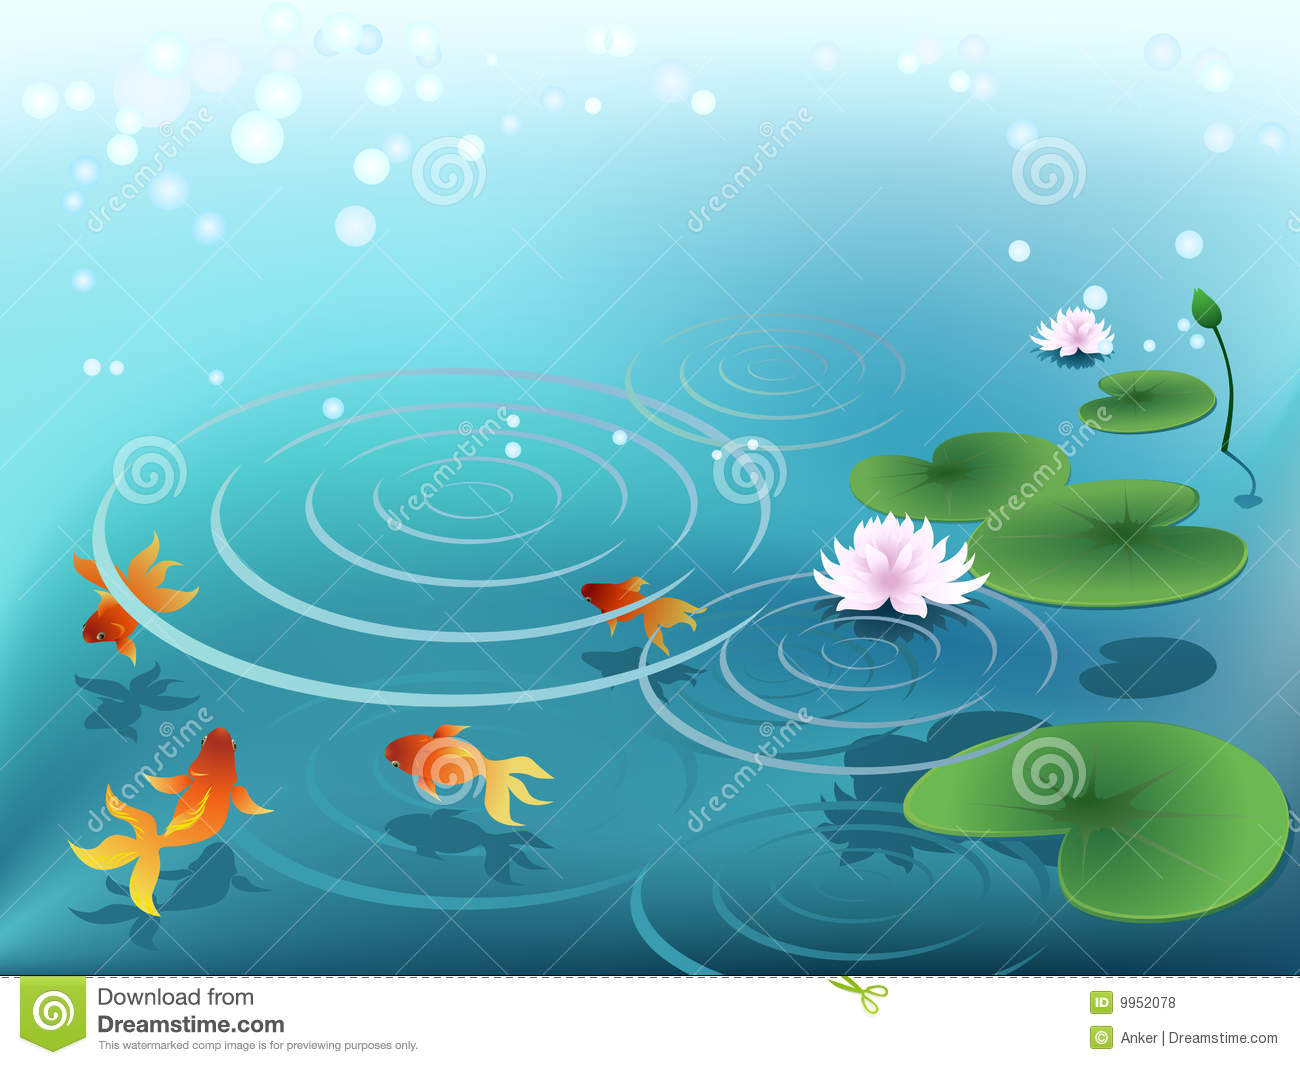 Water Lily Flower Clip Art